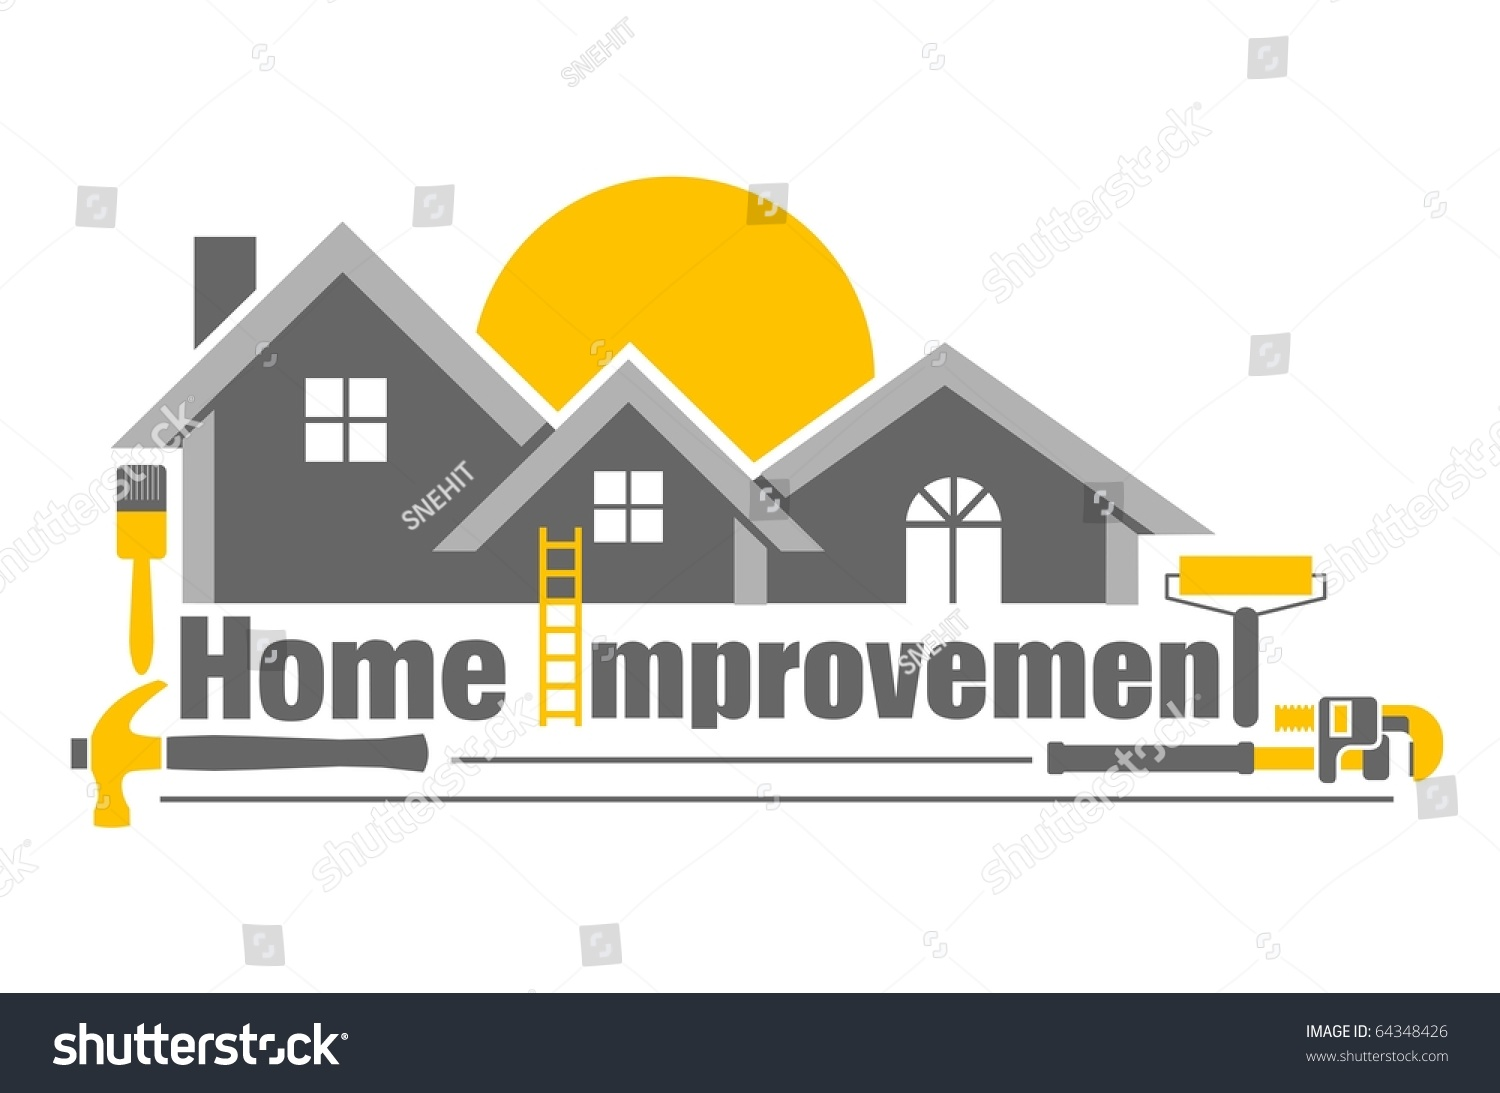 Vector illustration home improvement icon stock vector for A to z home improvements